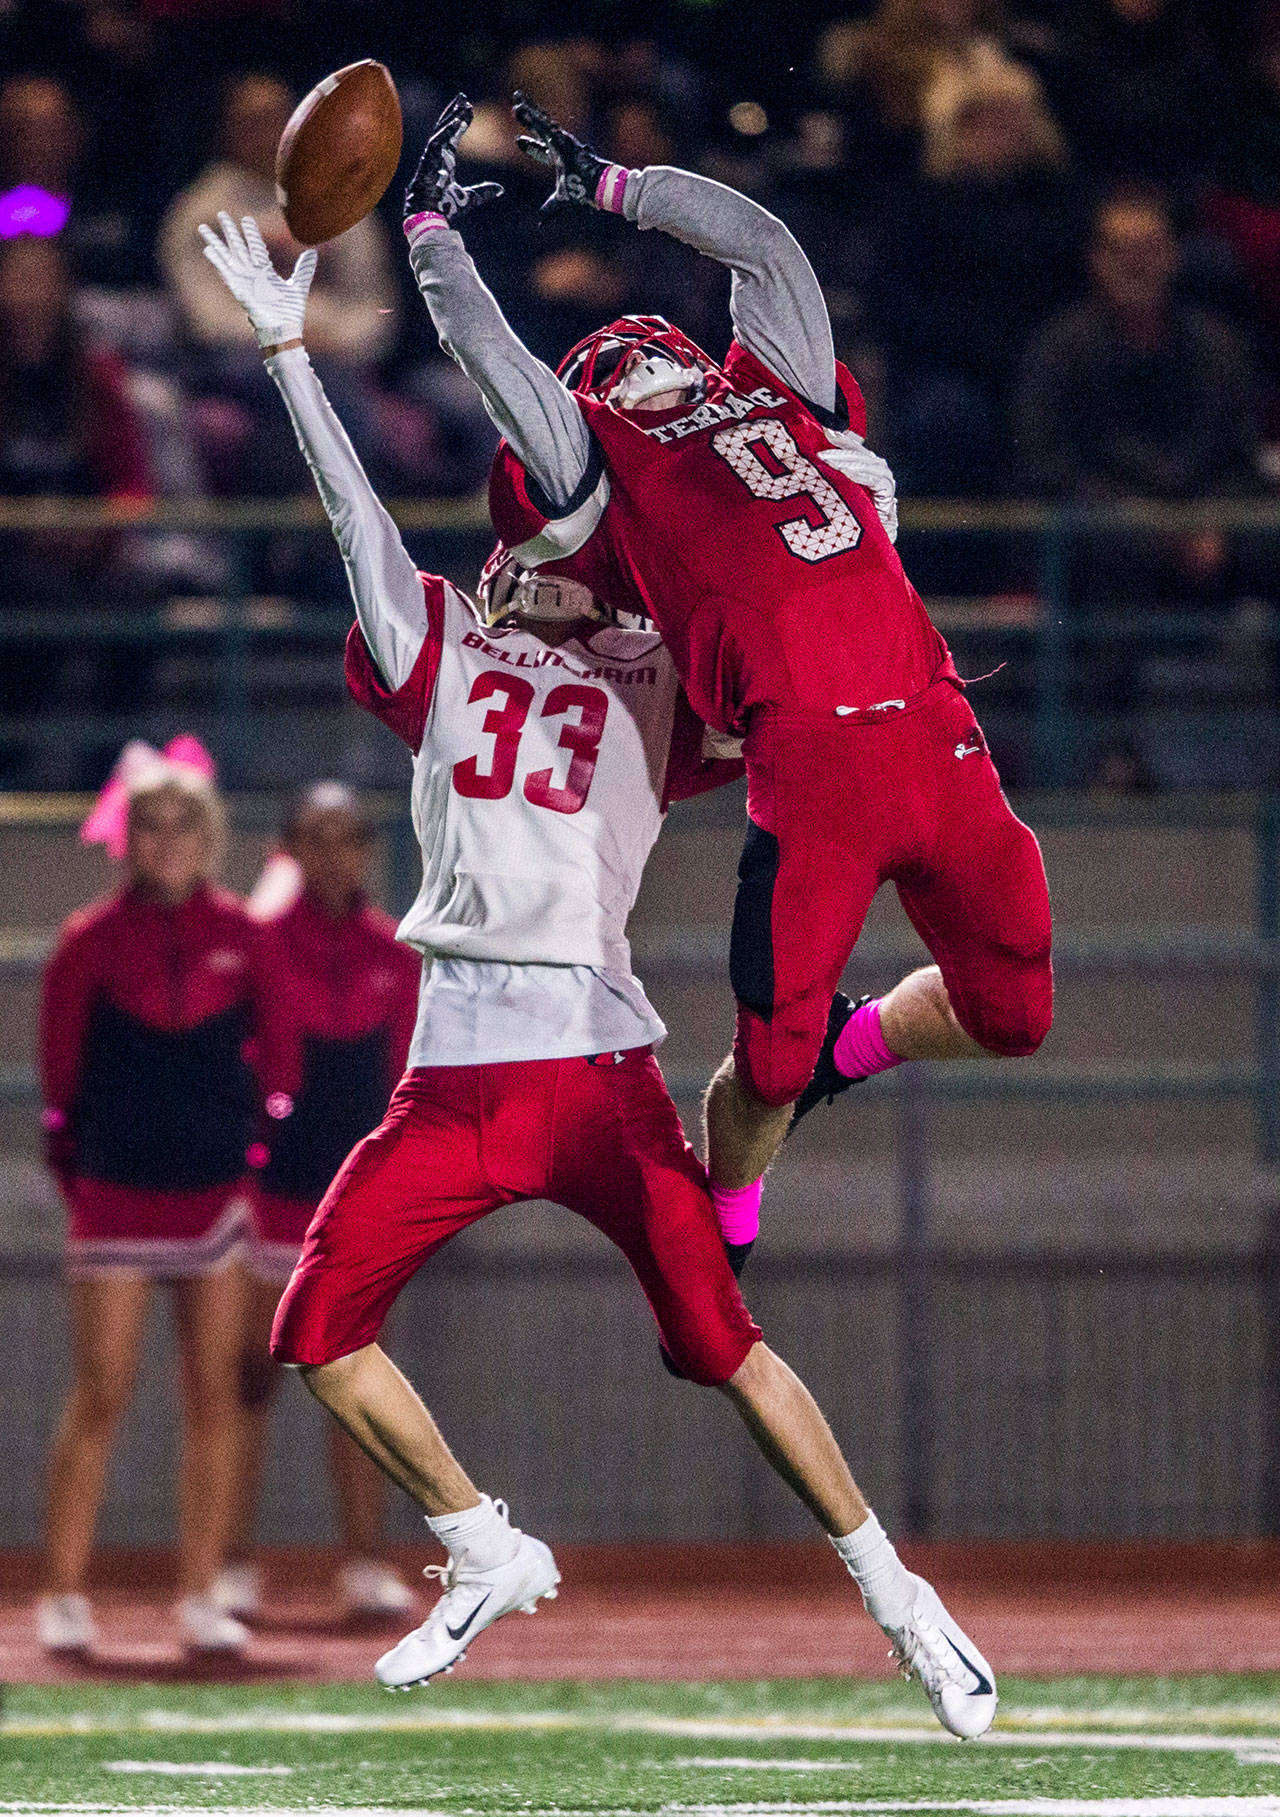 Mountlake Terrace's Brandon Bach (right) battles Bellingham's Trey Clayton for a pass during the game on Oct. 12, 2018, in Edmonds. (Olivia Vanni / The Herald)